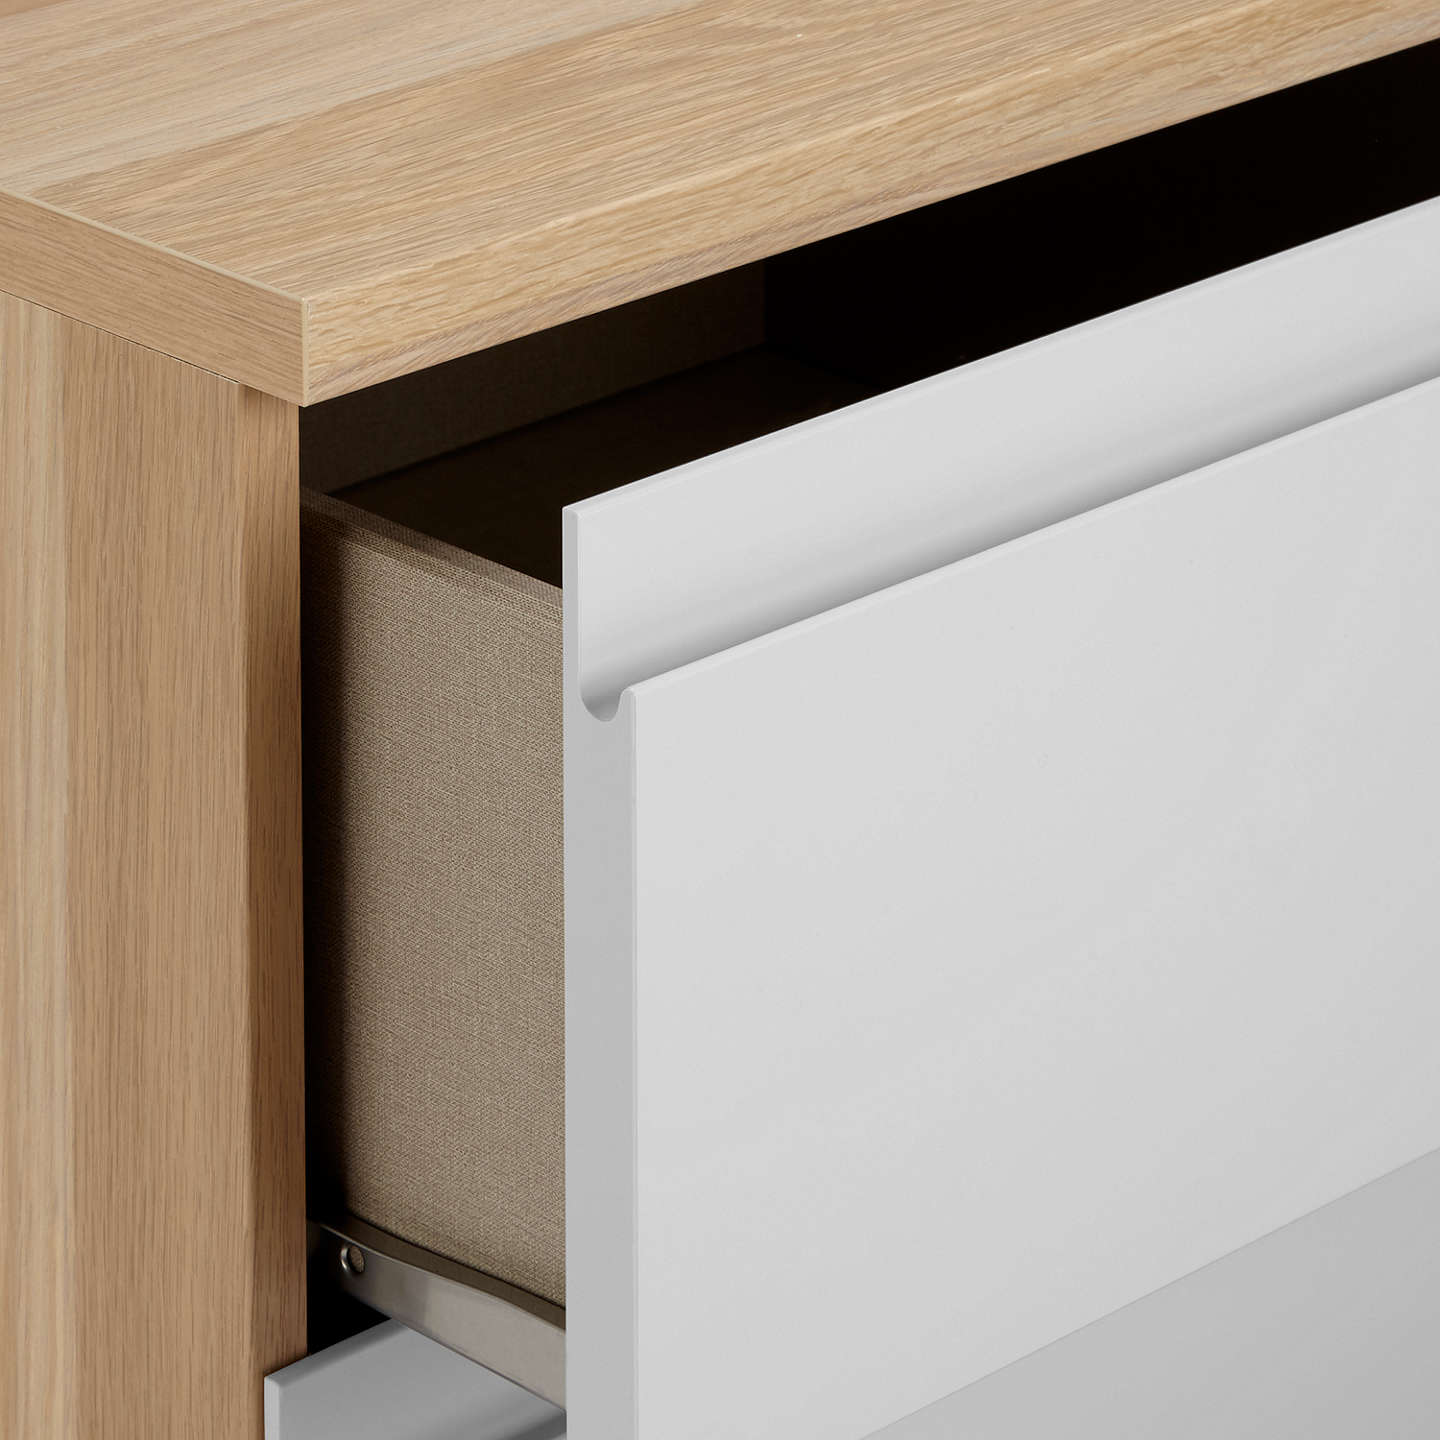 BuyHouse by John Lewis Mix it 2 Drawer Bedside Chest, House Smoke/Natural Oak Online at johnlewis.com